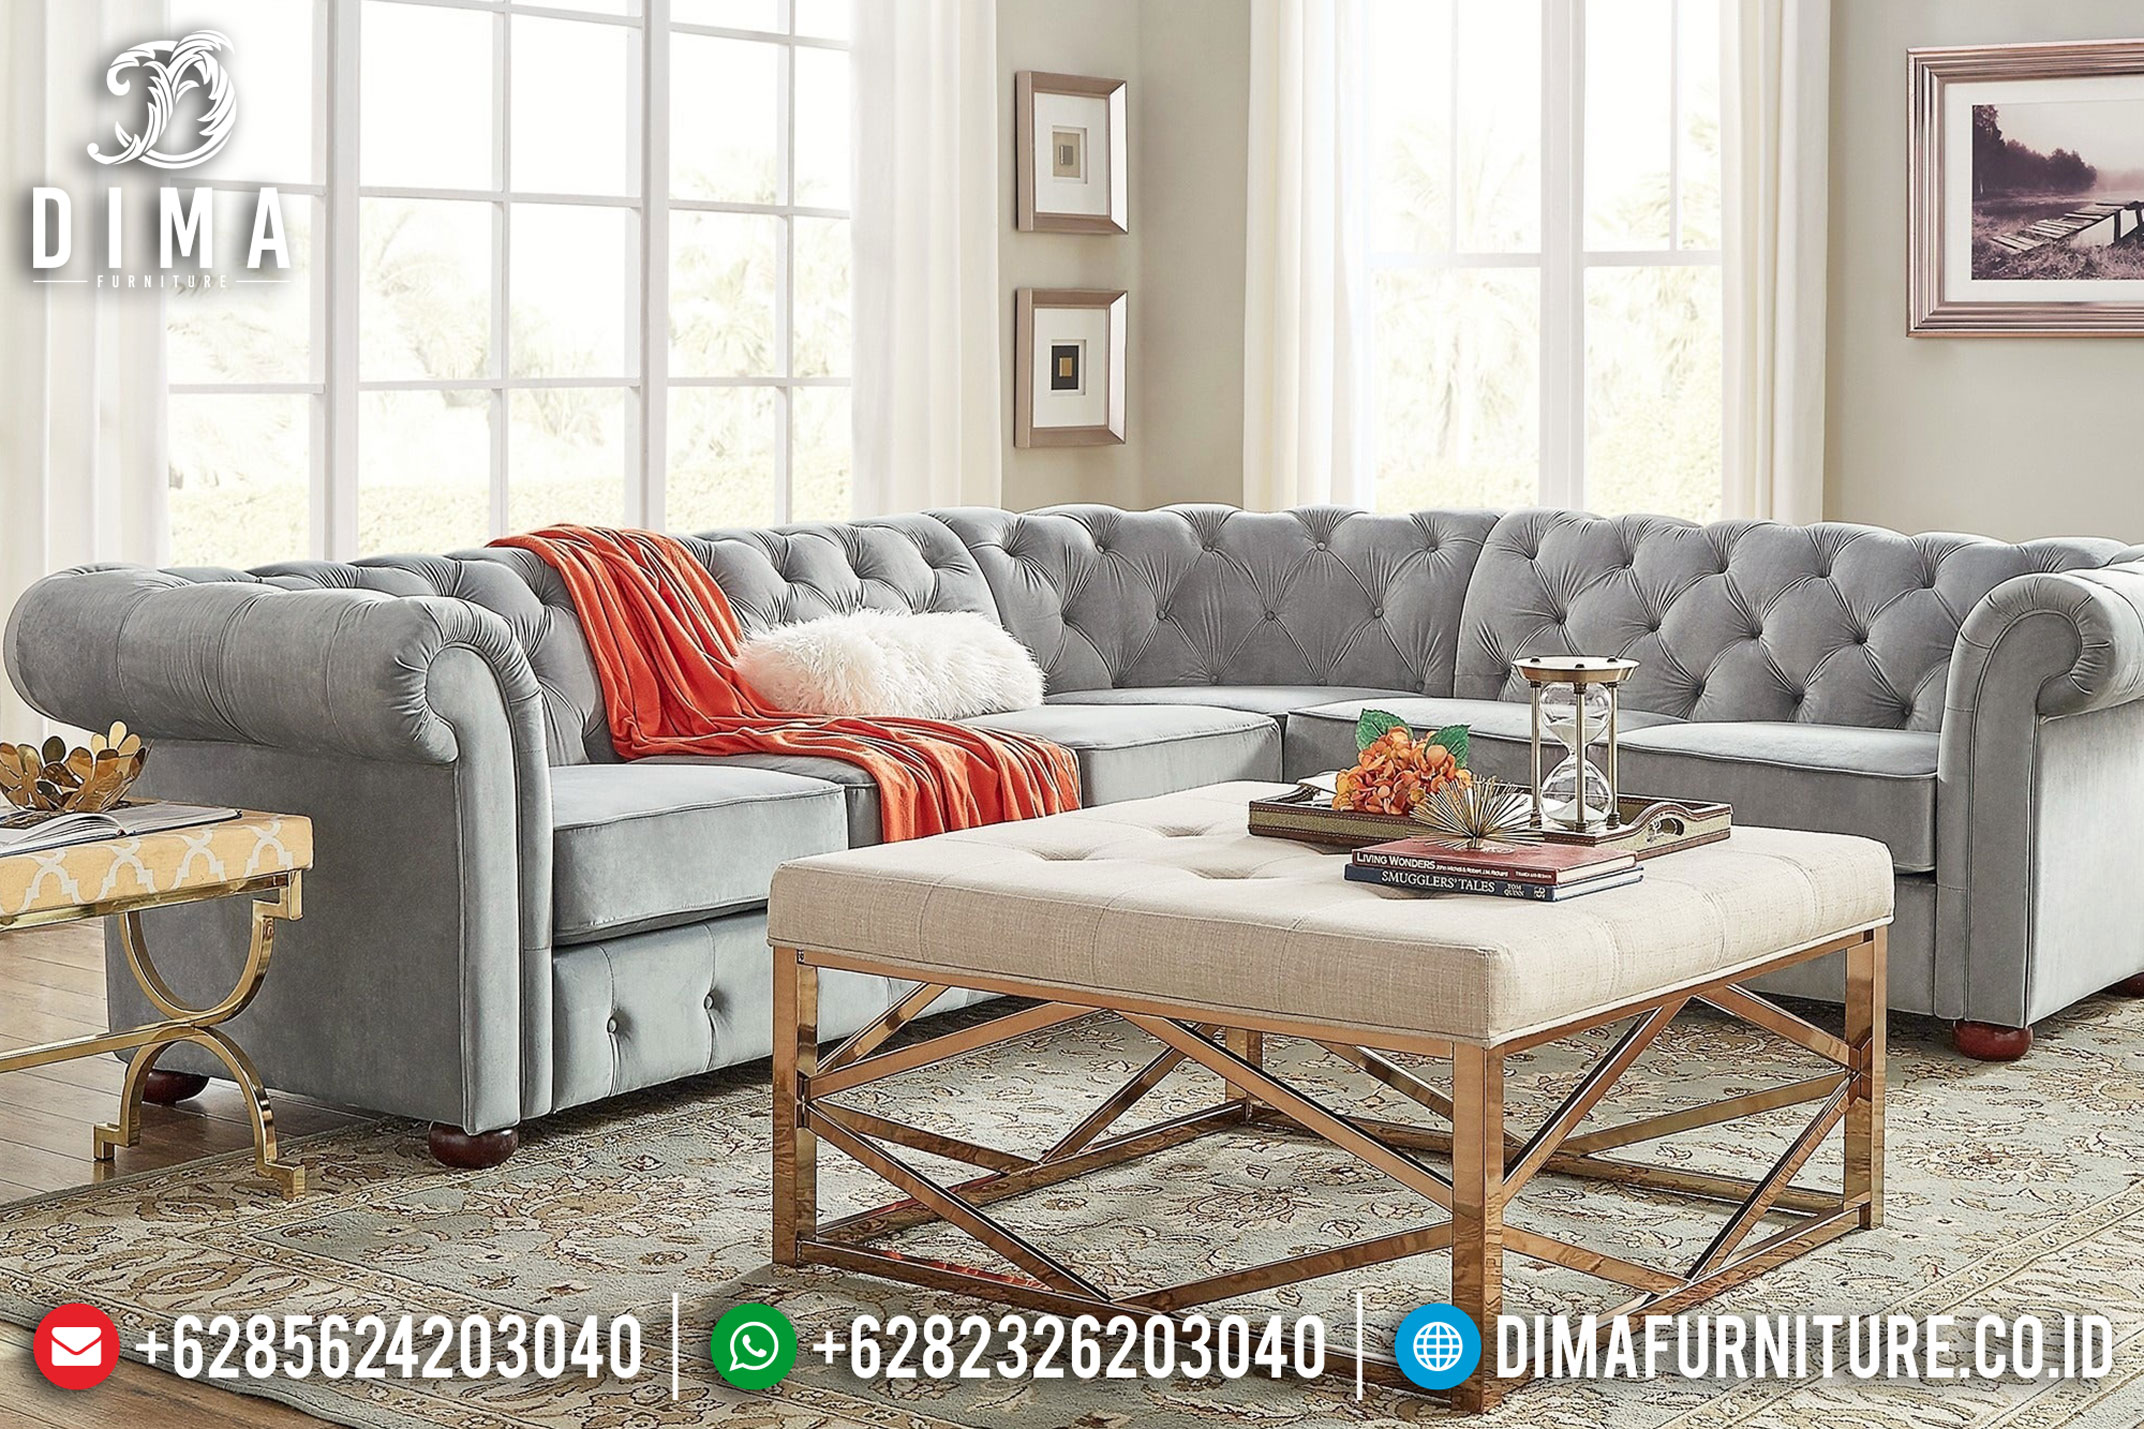 Chesterfield Tufted Sofa Tamu Minimalis Jepara Mewah Model Terbaru DF-0858